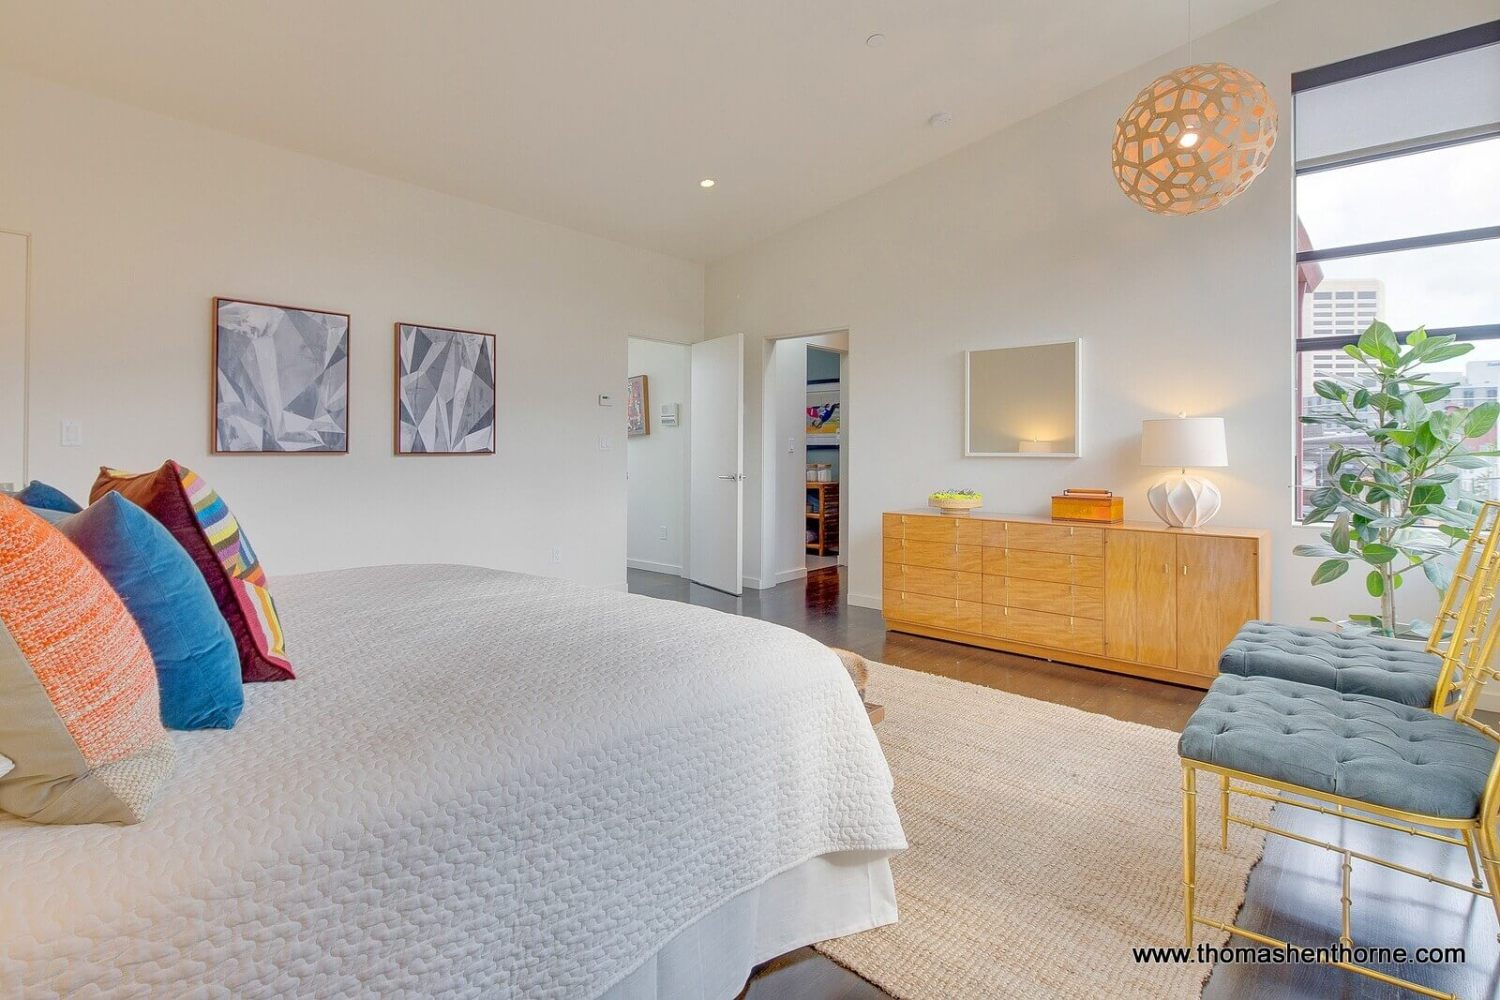 Photo of bedroom with two yellow chairs and modern hanging lamp